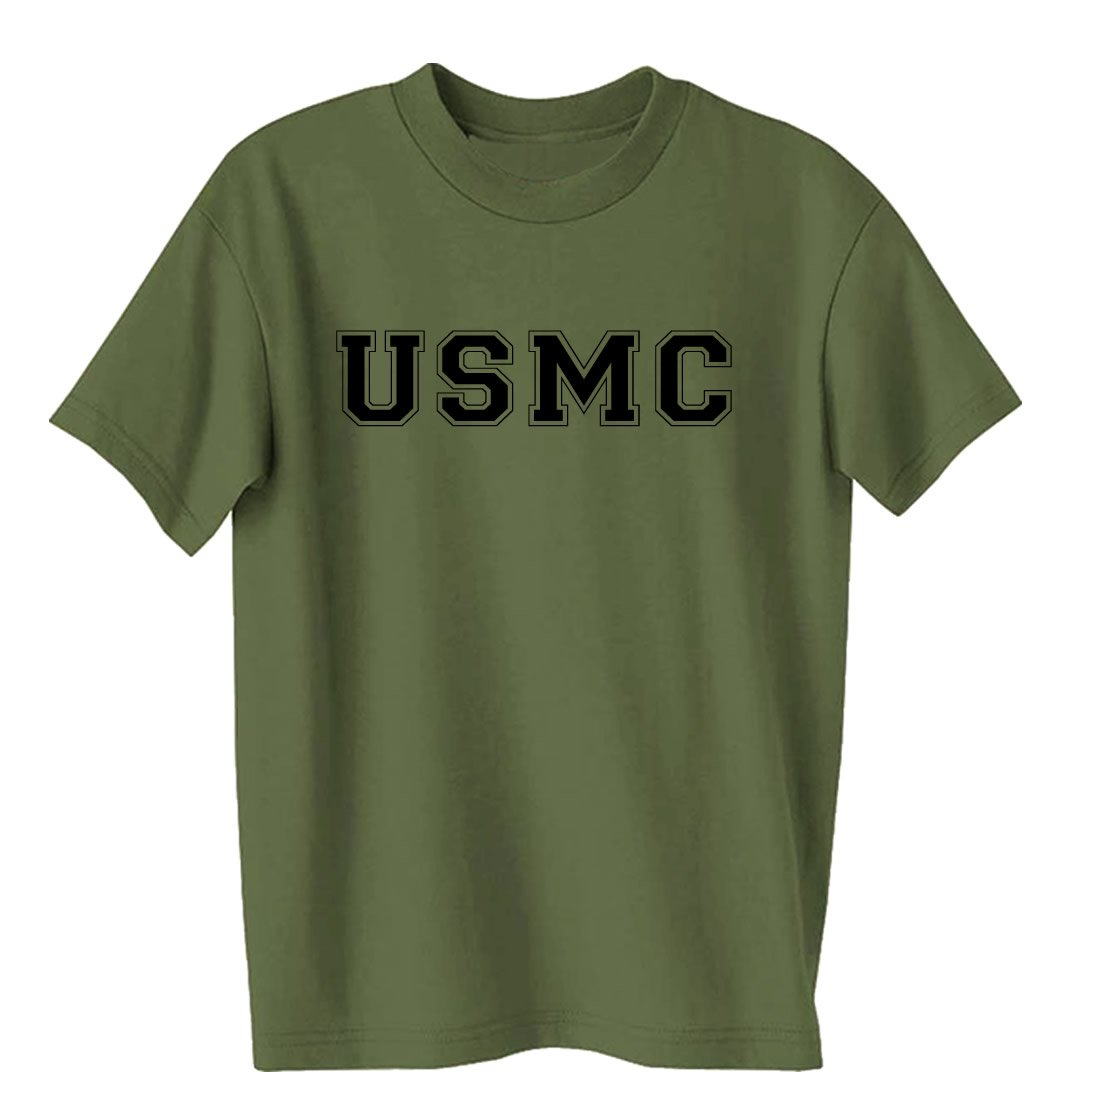 USMC Athletic Marines S/S T-Shirt in Military Green PA-1035